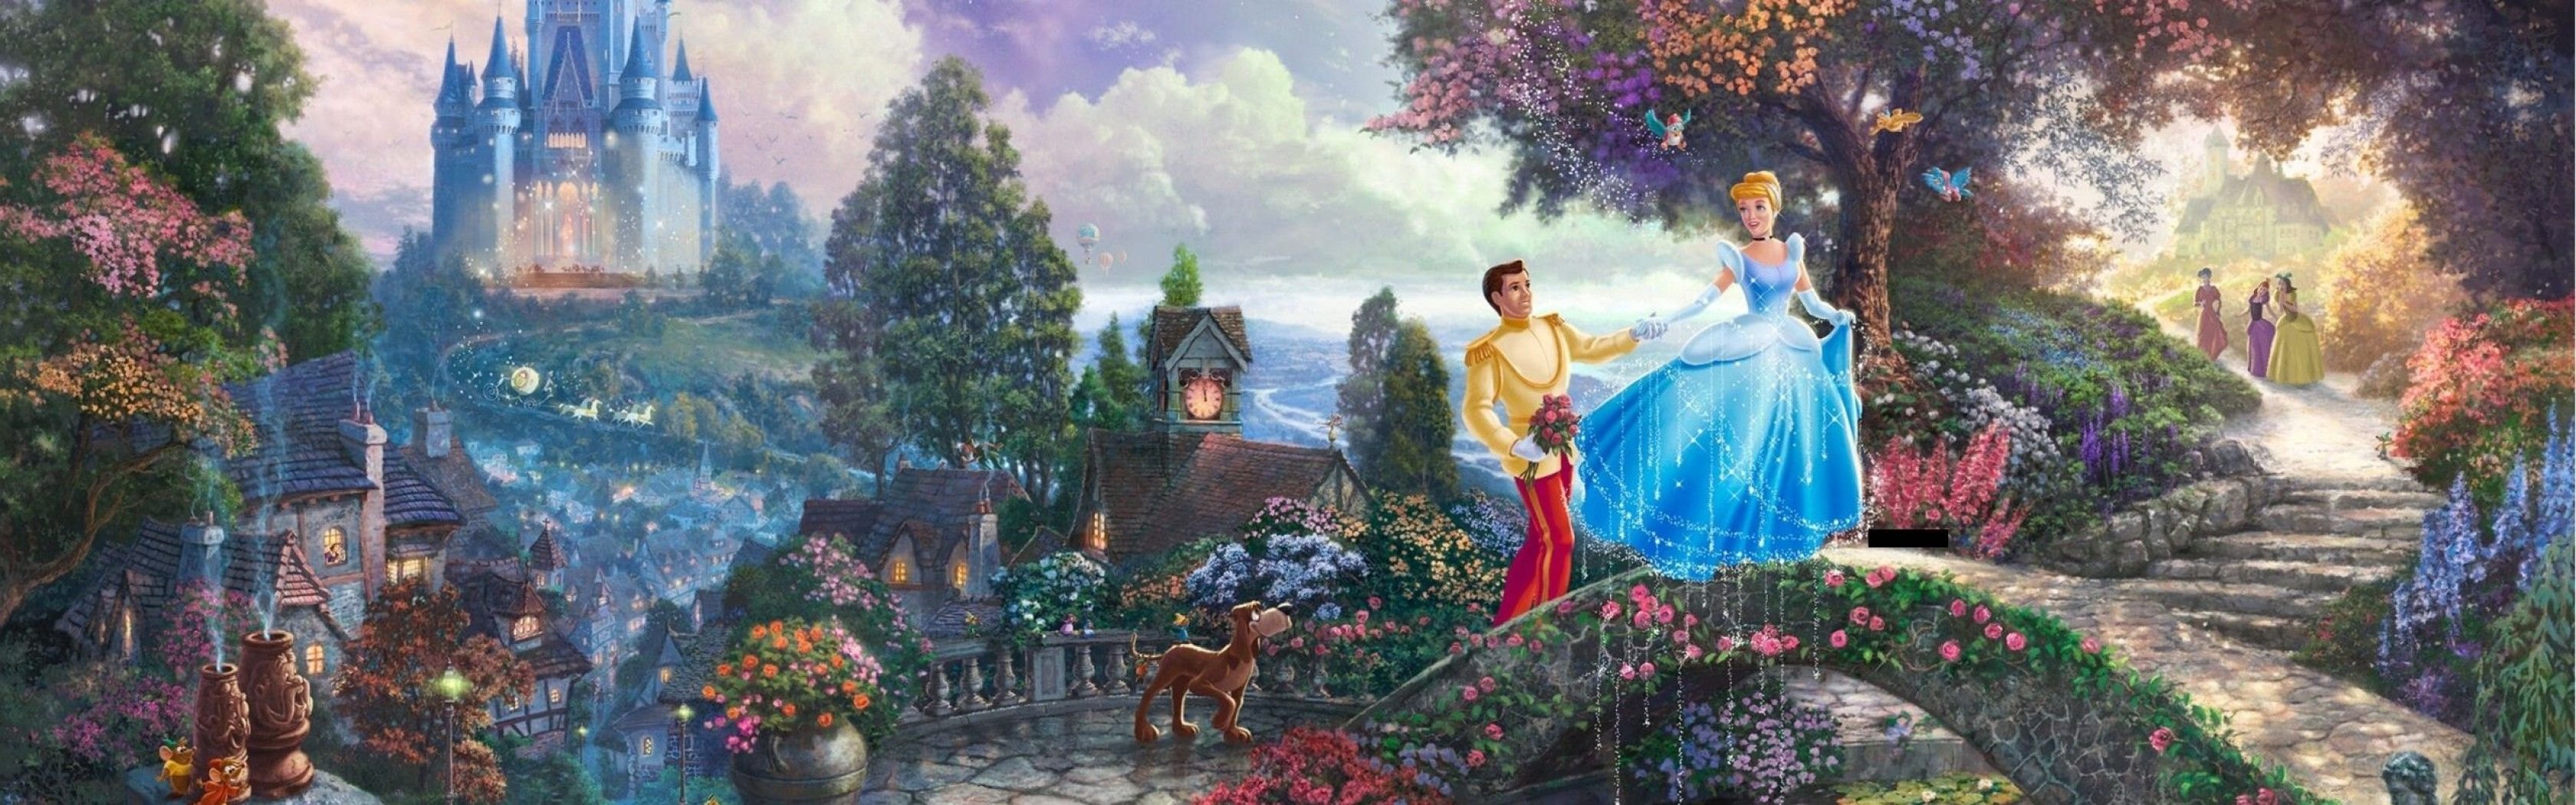 Thomas Kinkade Disney Wallpapers 3360x1050